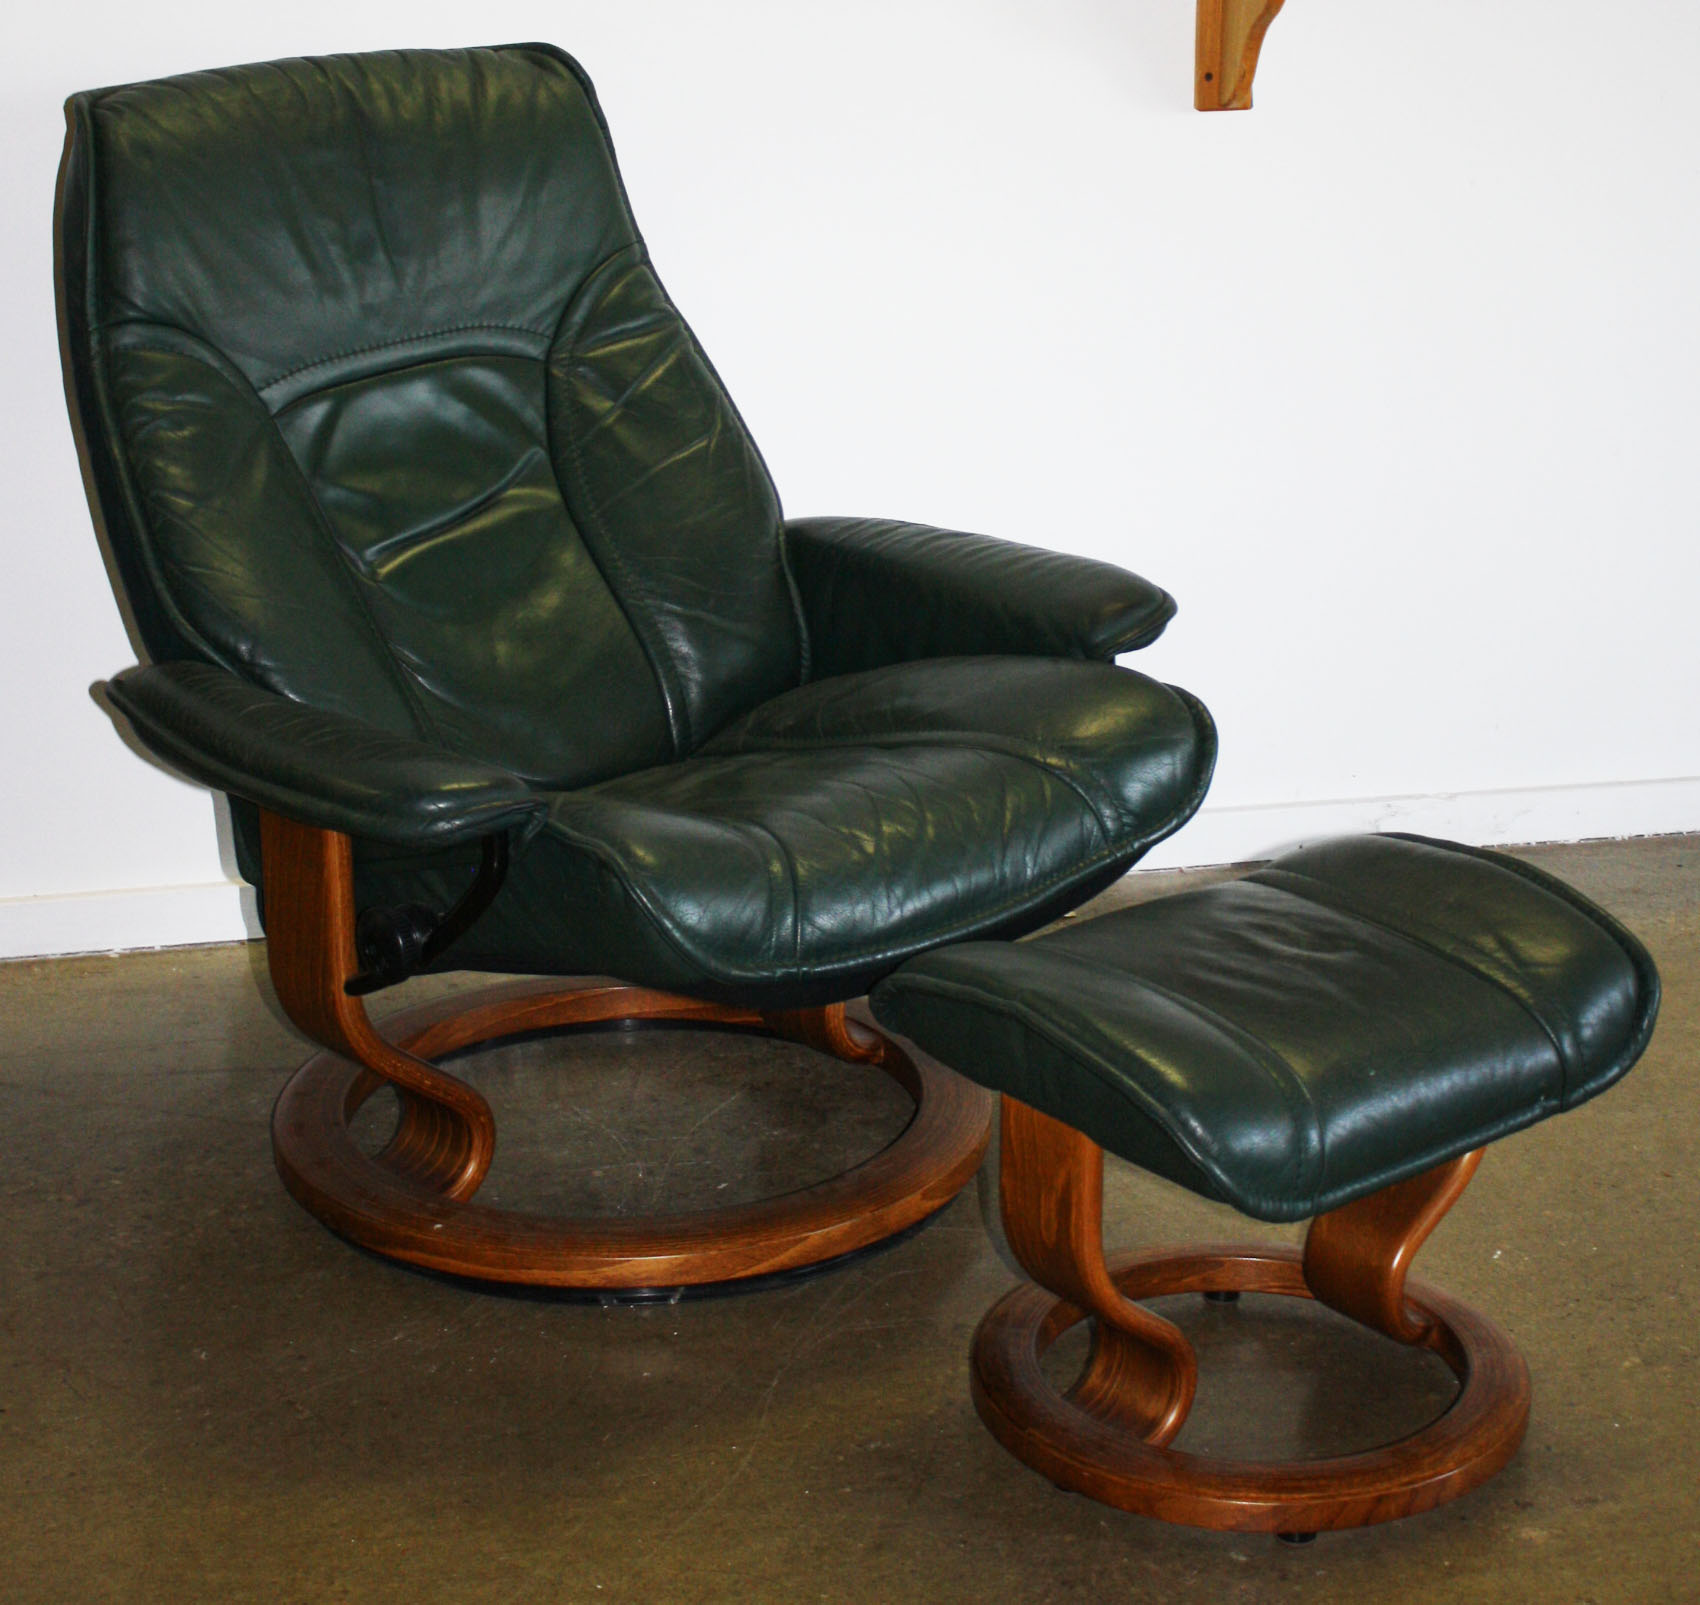 Ekornes Stressless Ekornes Stressless Lounge Chair Jpg Merrill S Auction